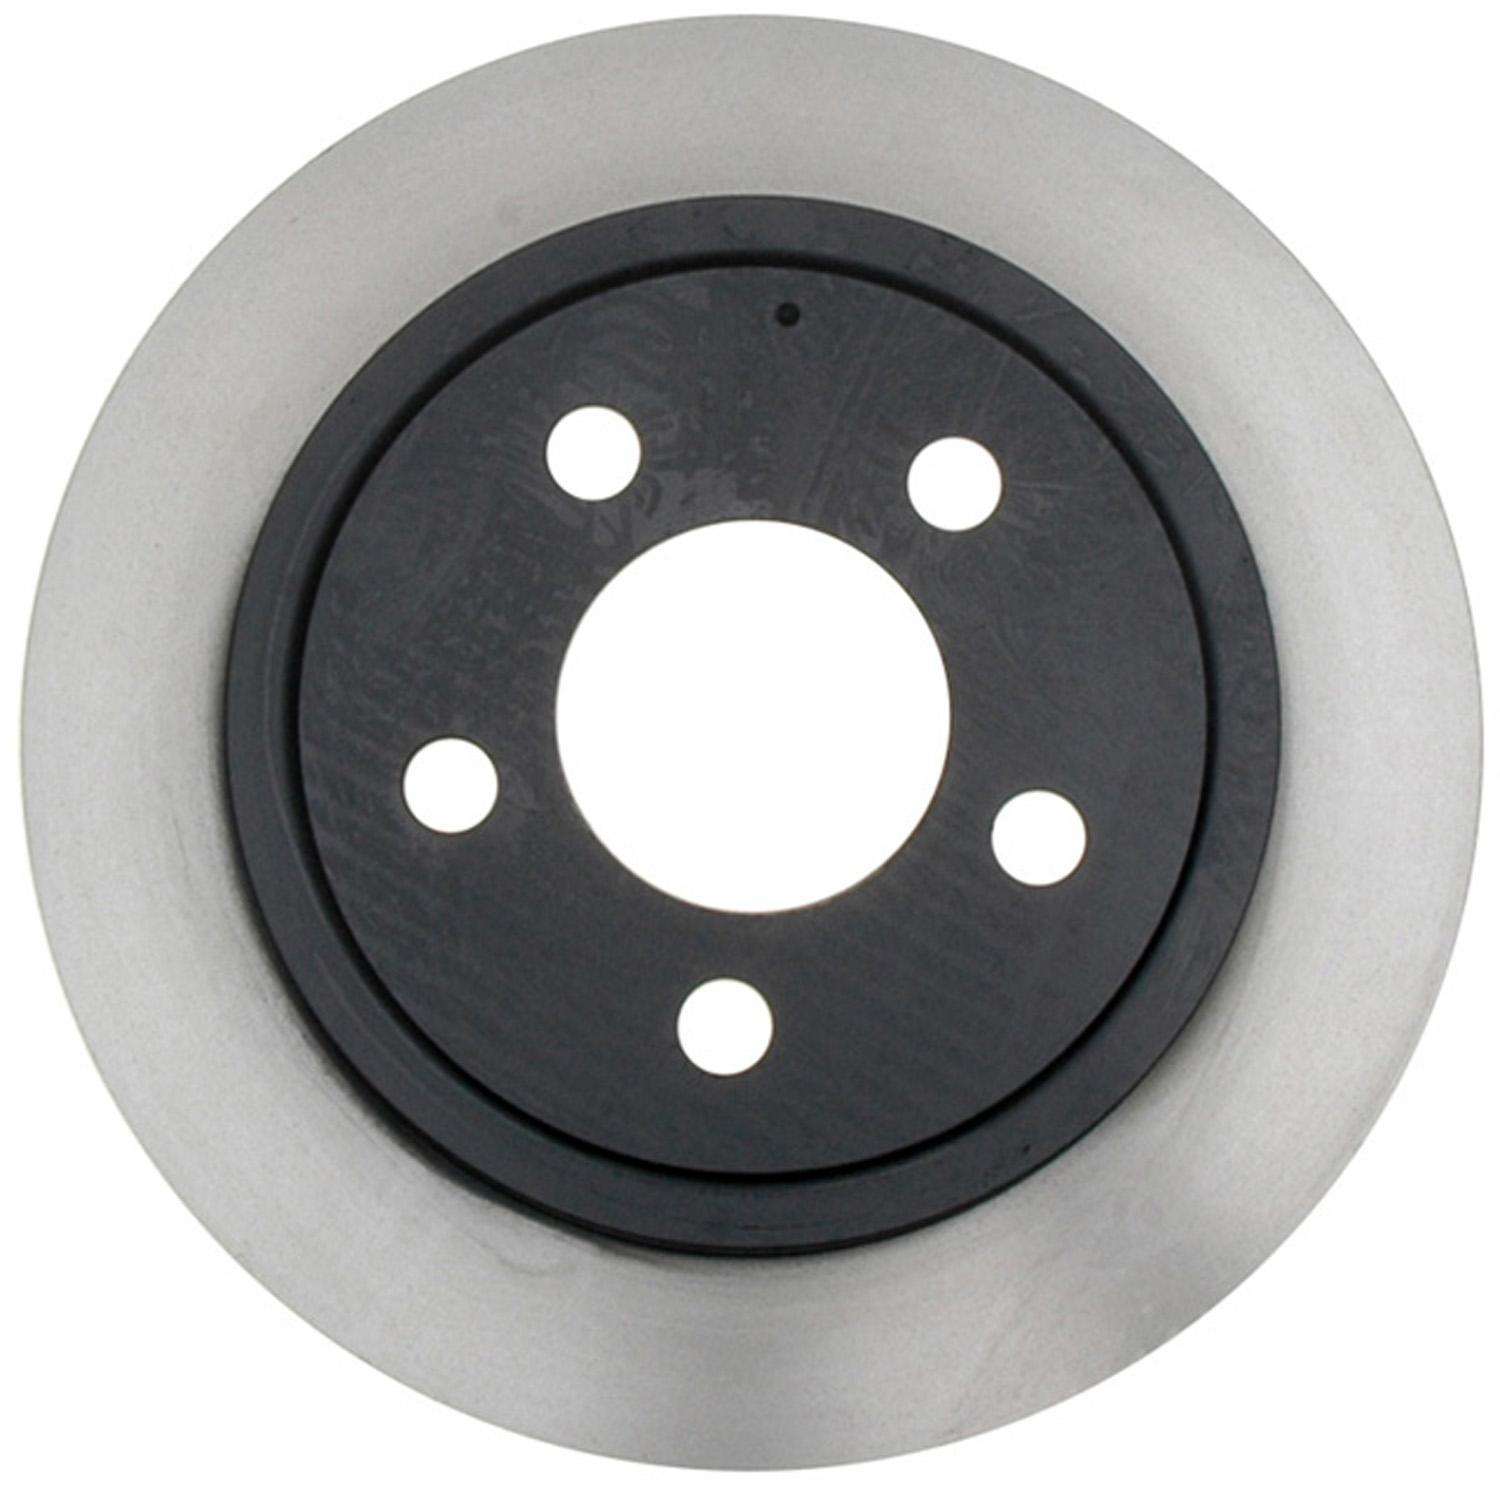 ACDELCO GOLD/PROFESSIONAL BRAKES - Disc Brake Rotor (Rear) - ADU 18A1336